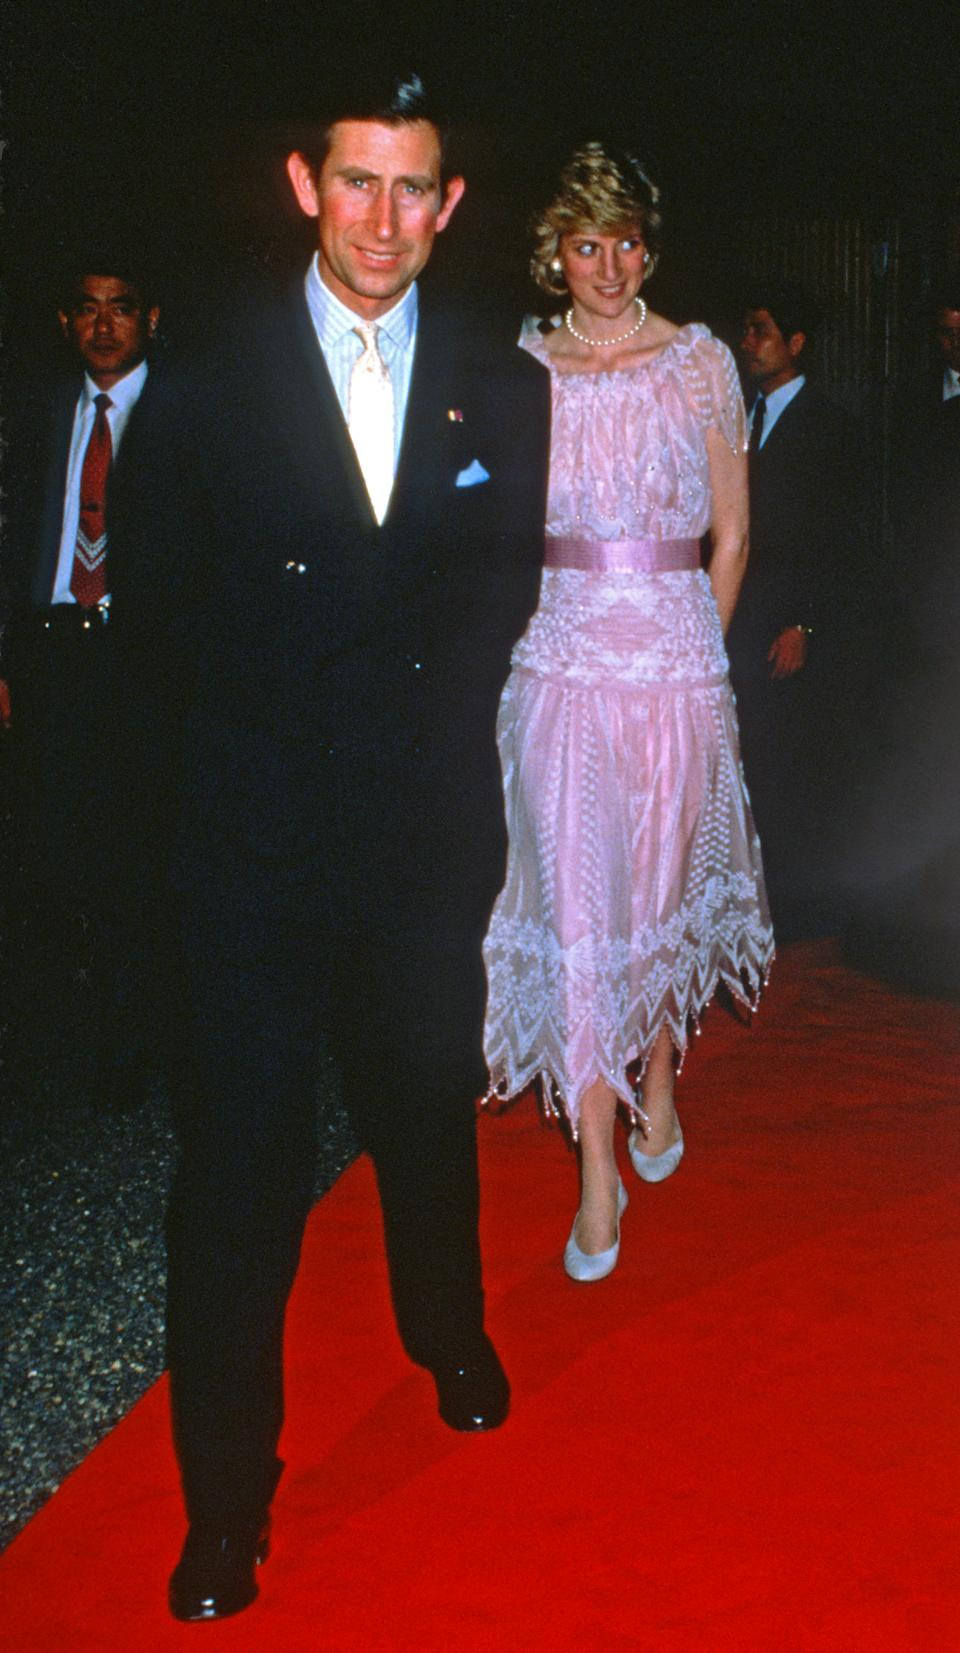 KYOTO, JAPAN - MAY 09: Prince Charles, Prince of Wales and Diana, Princess of Wales, wearing a pink dress designed by Zandra Rhodes, arrive to attend a dinner on May 9, 1986 in Kyoto, Japan. (Photo by Anwar Hussein/Getty Images)